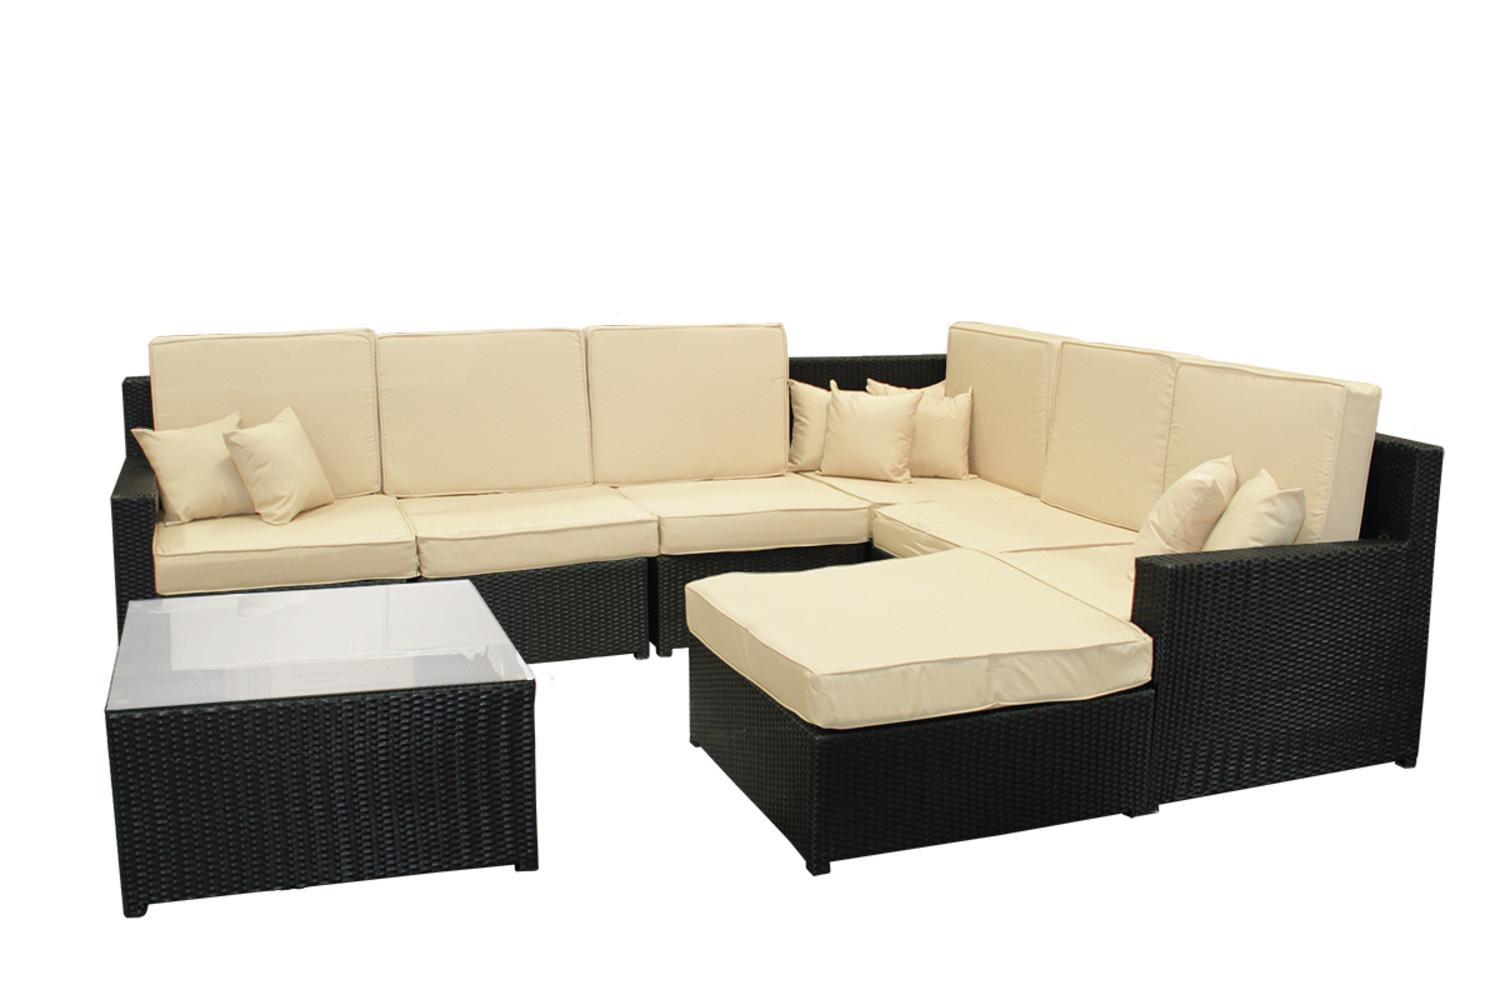 8 Piece Black Resin Wicker Outdoor Furniture Sectional Sofa Table